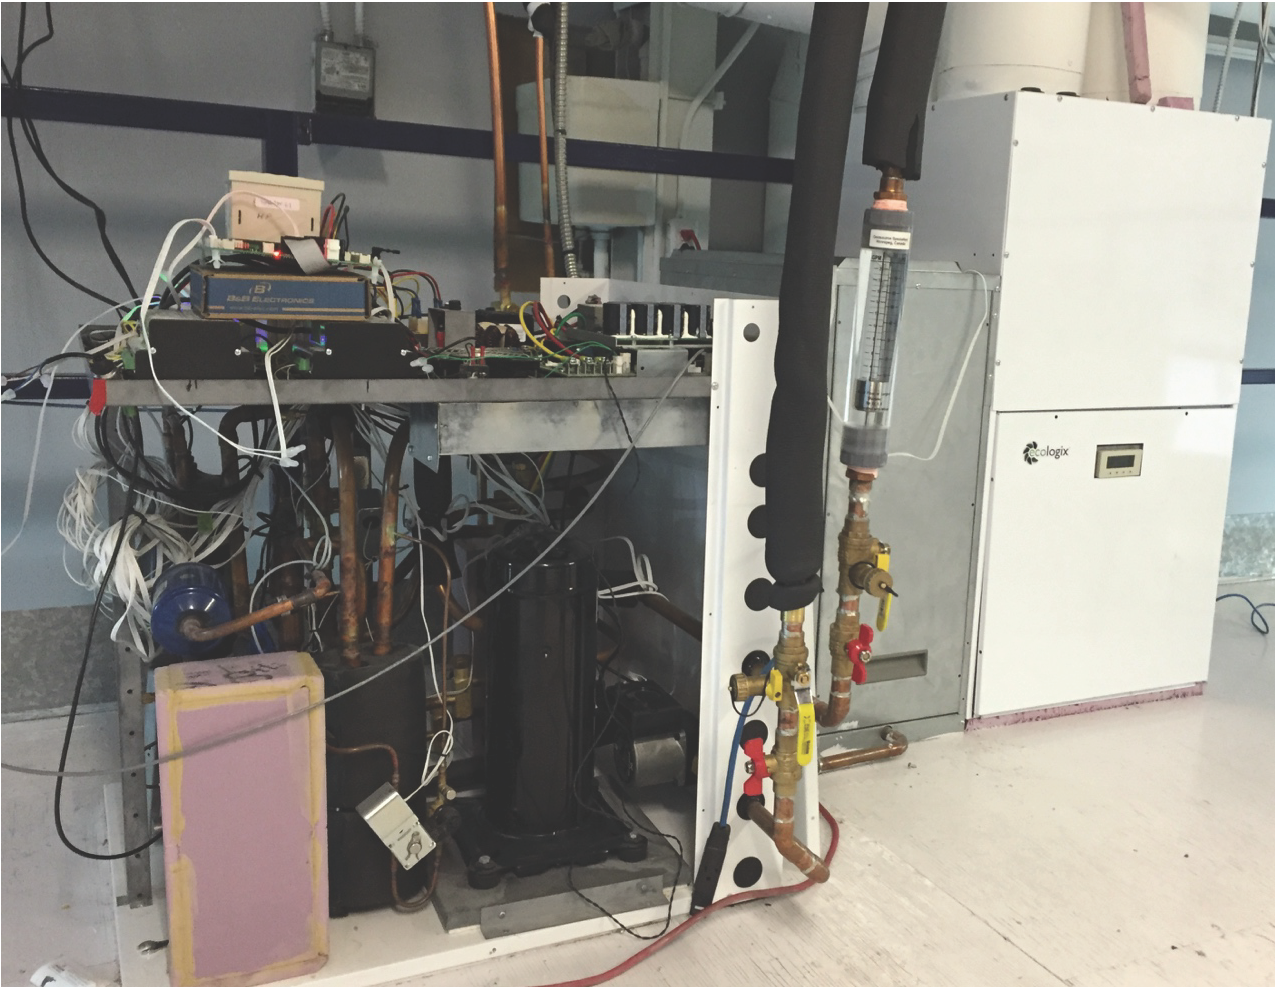 The photo shows the interior of the Ecologix prototype integrated heat pump module, connected to various instruments for laboratory testing, with its air handler in the background